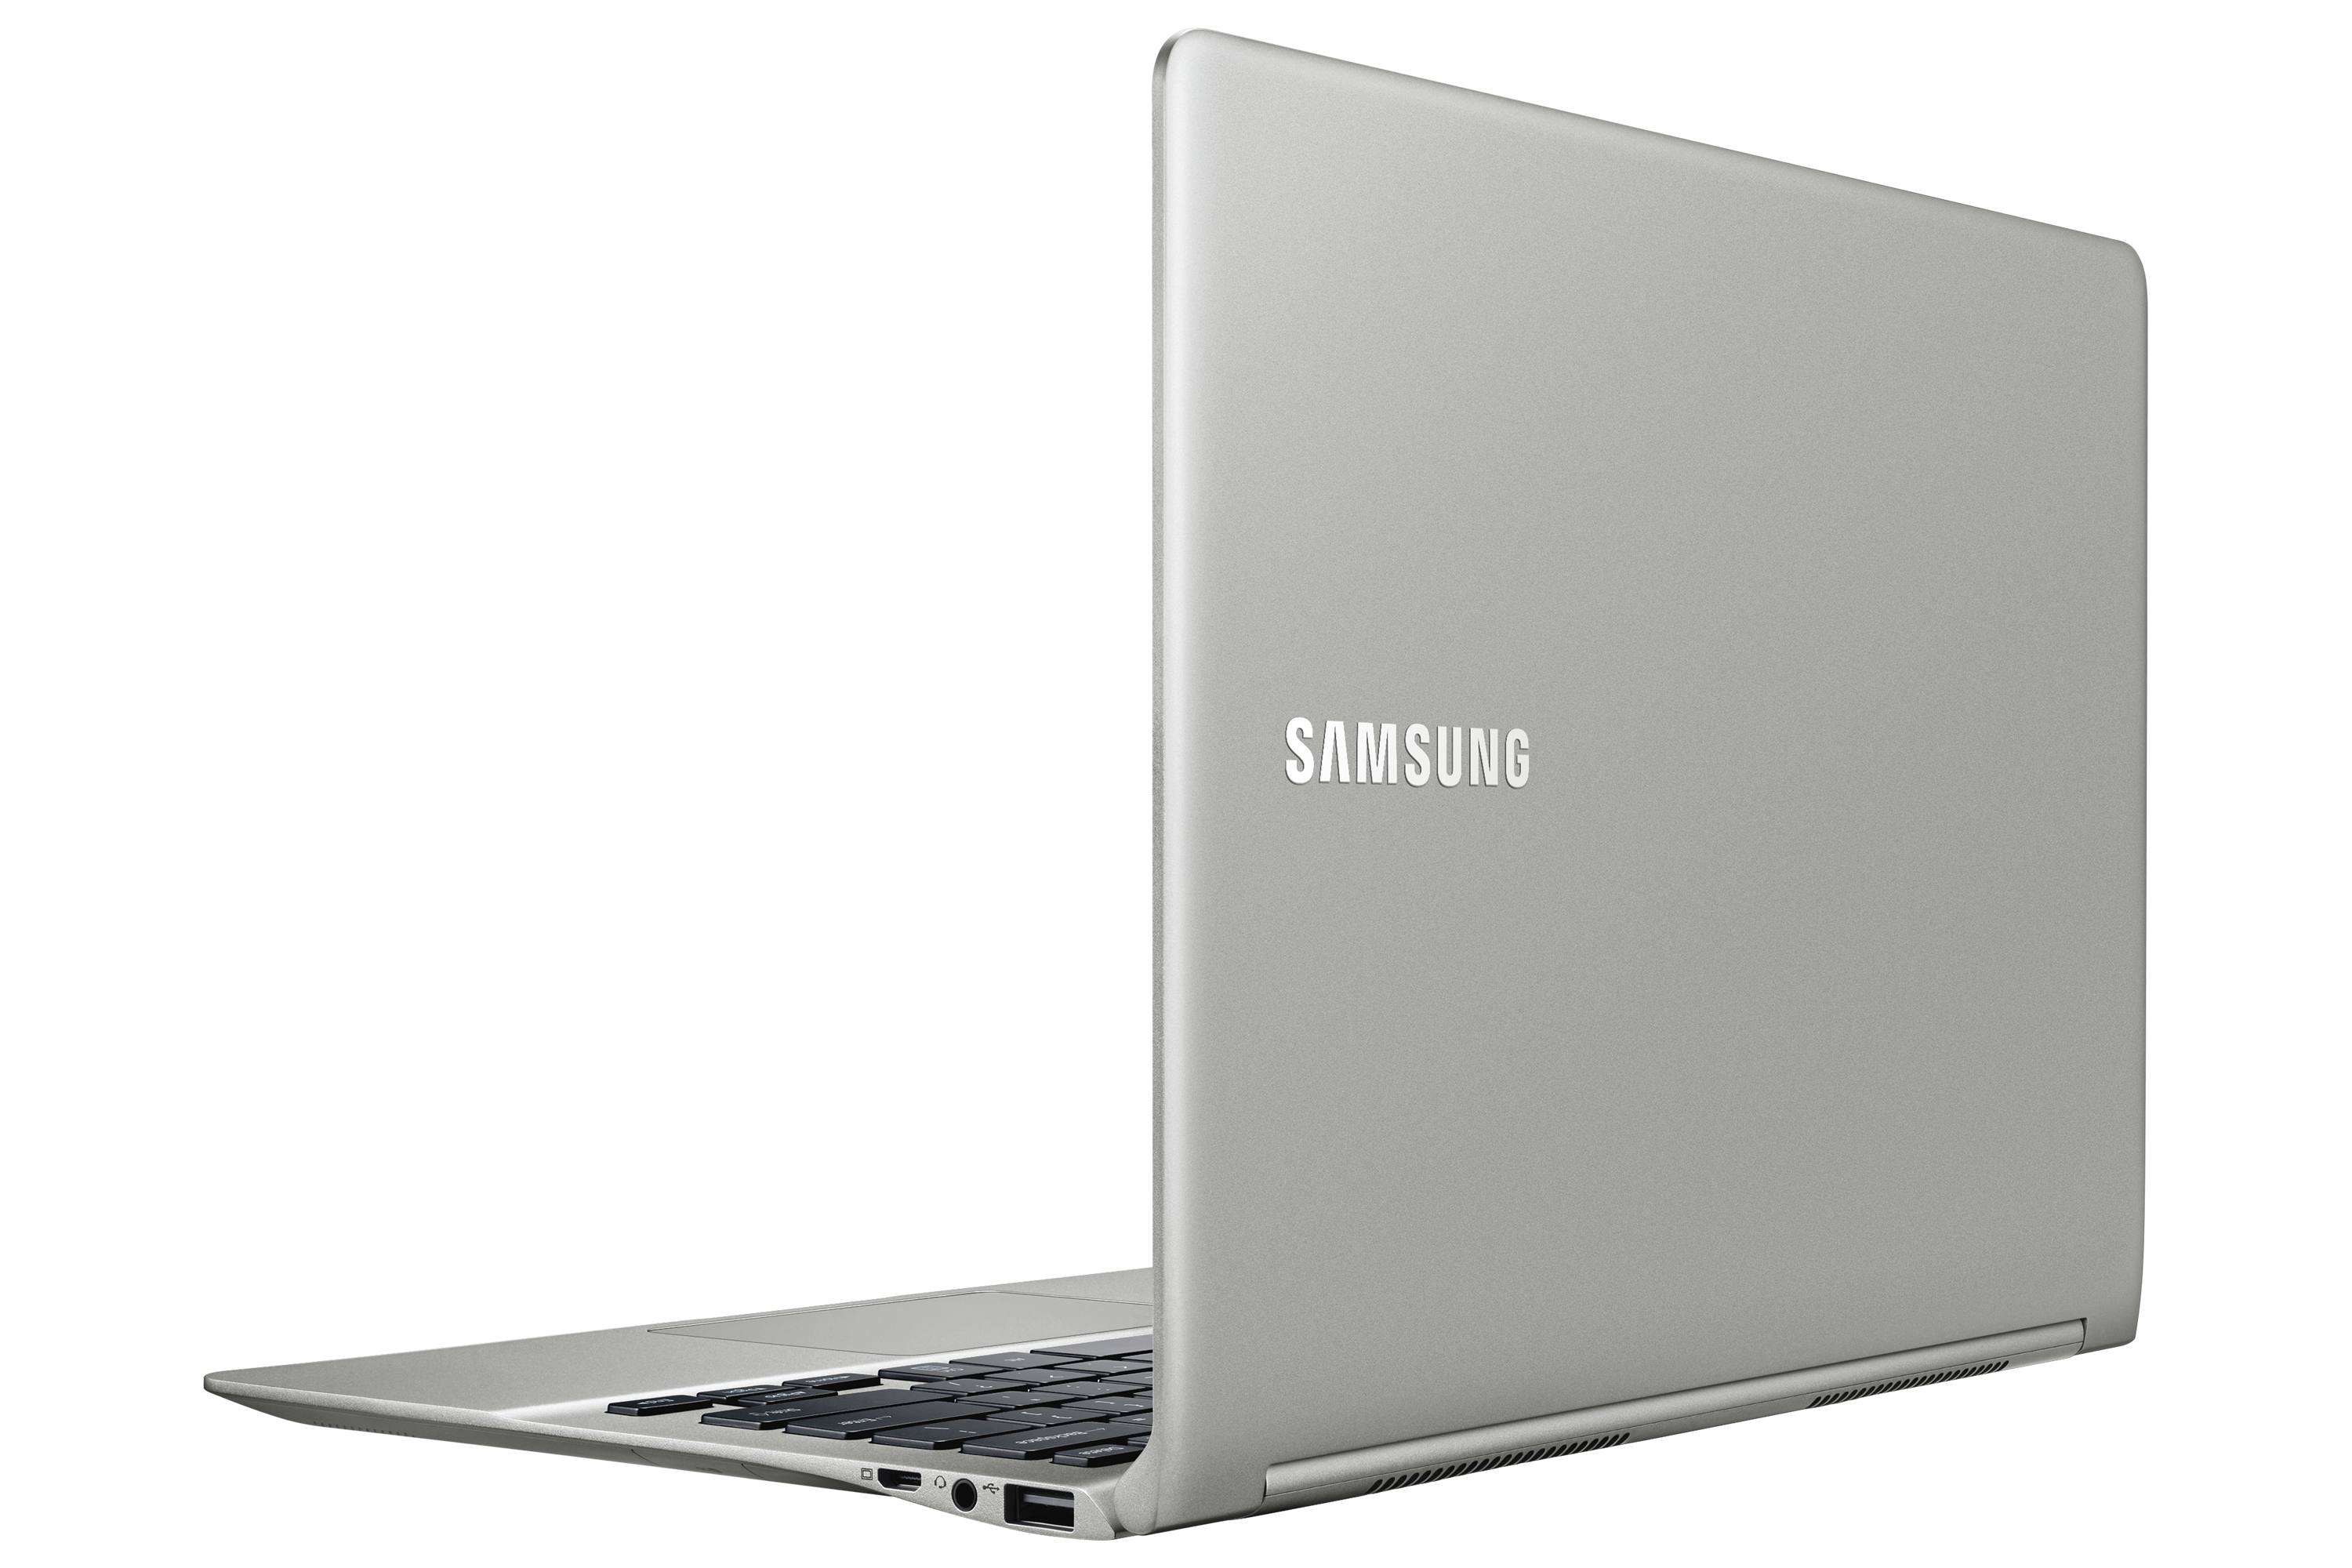 노트북 9 metal (33.7 cm) NT900X3H-K38 Core™ i3 / 256 GB SSD